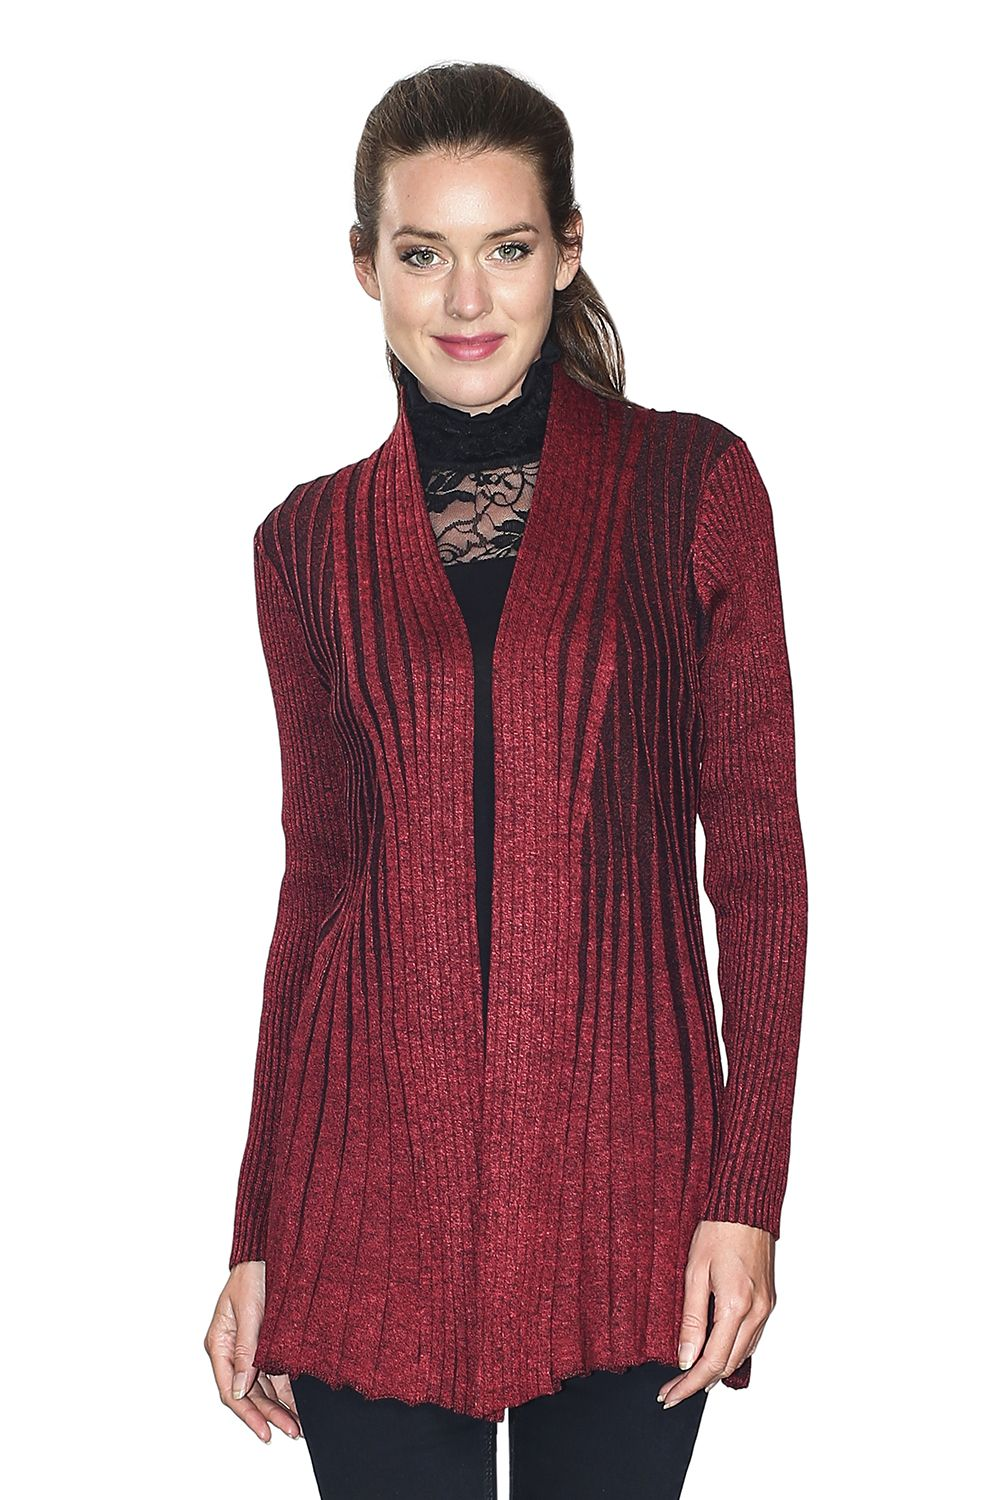 Assuili Long Sleeve Textured Mesh Open Cardigan (Classic Fit) in Red